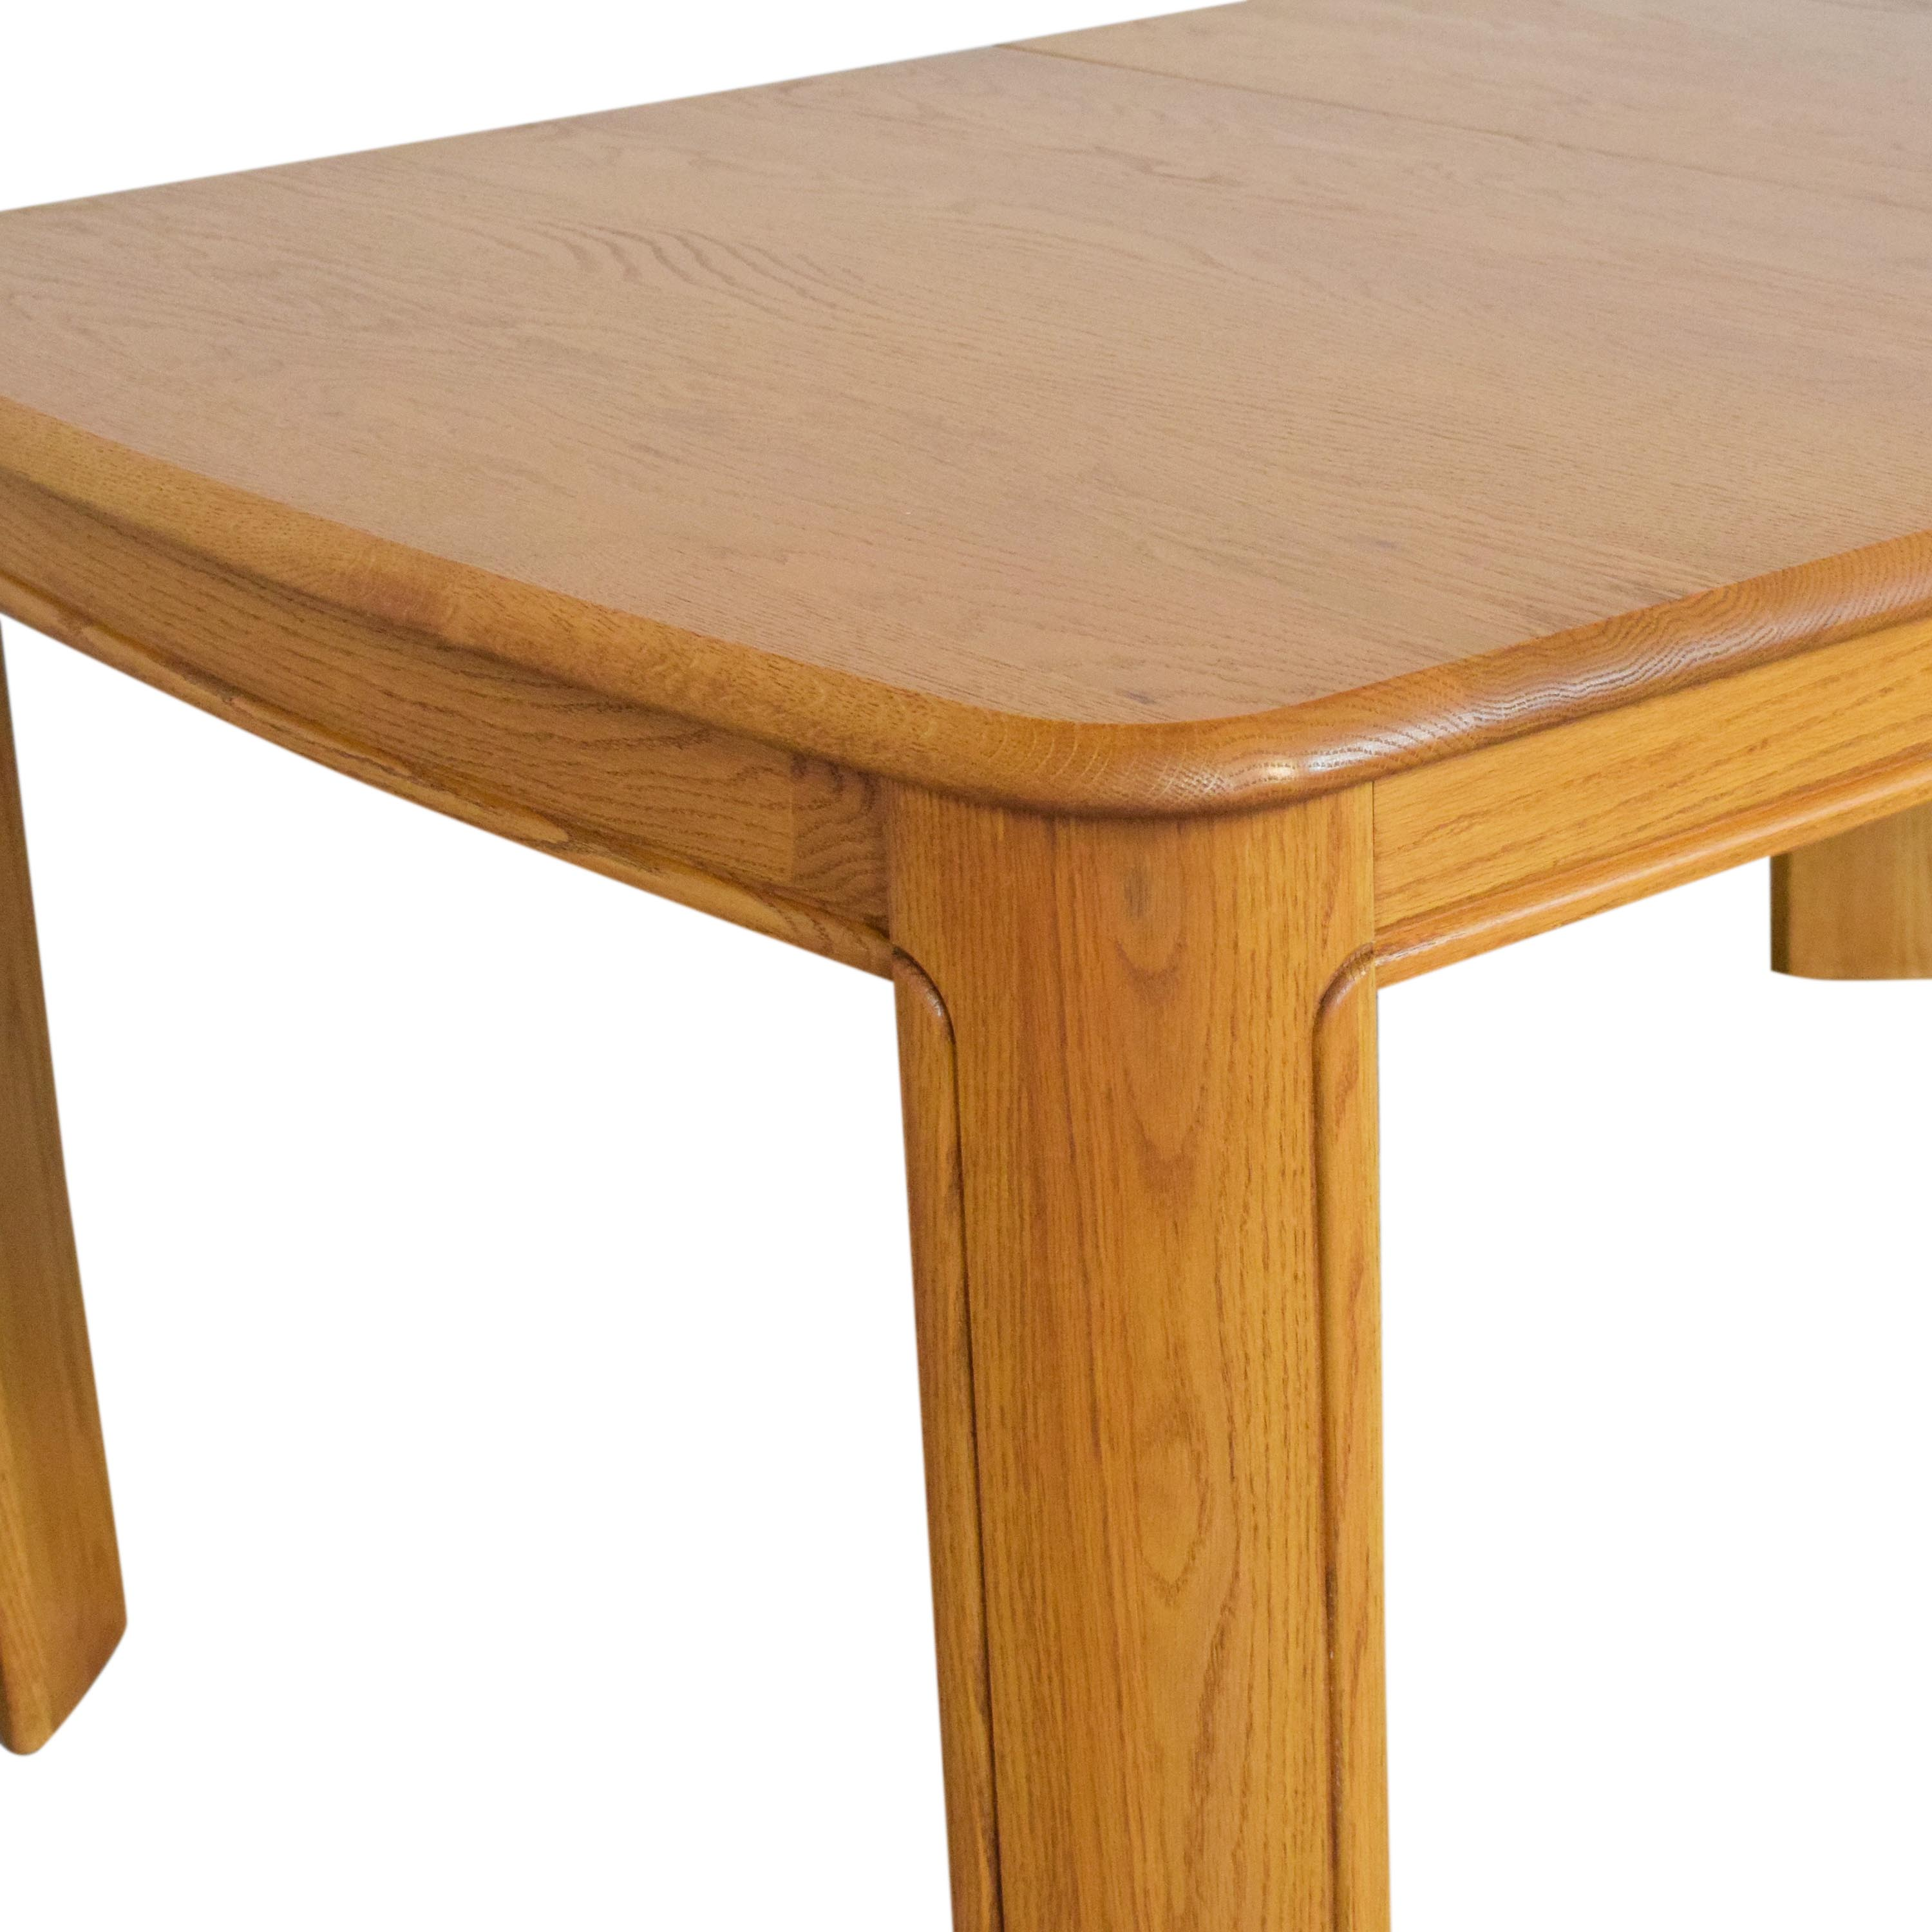 Keller Keller Extendable Dining Table coupon